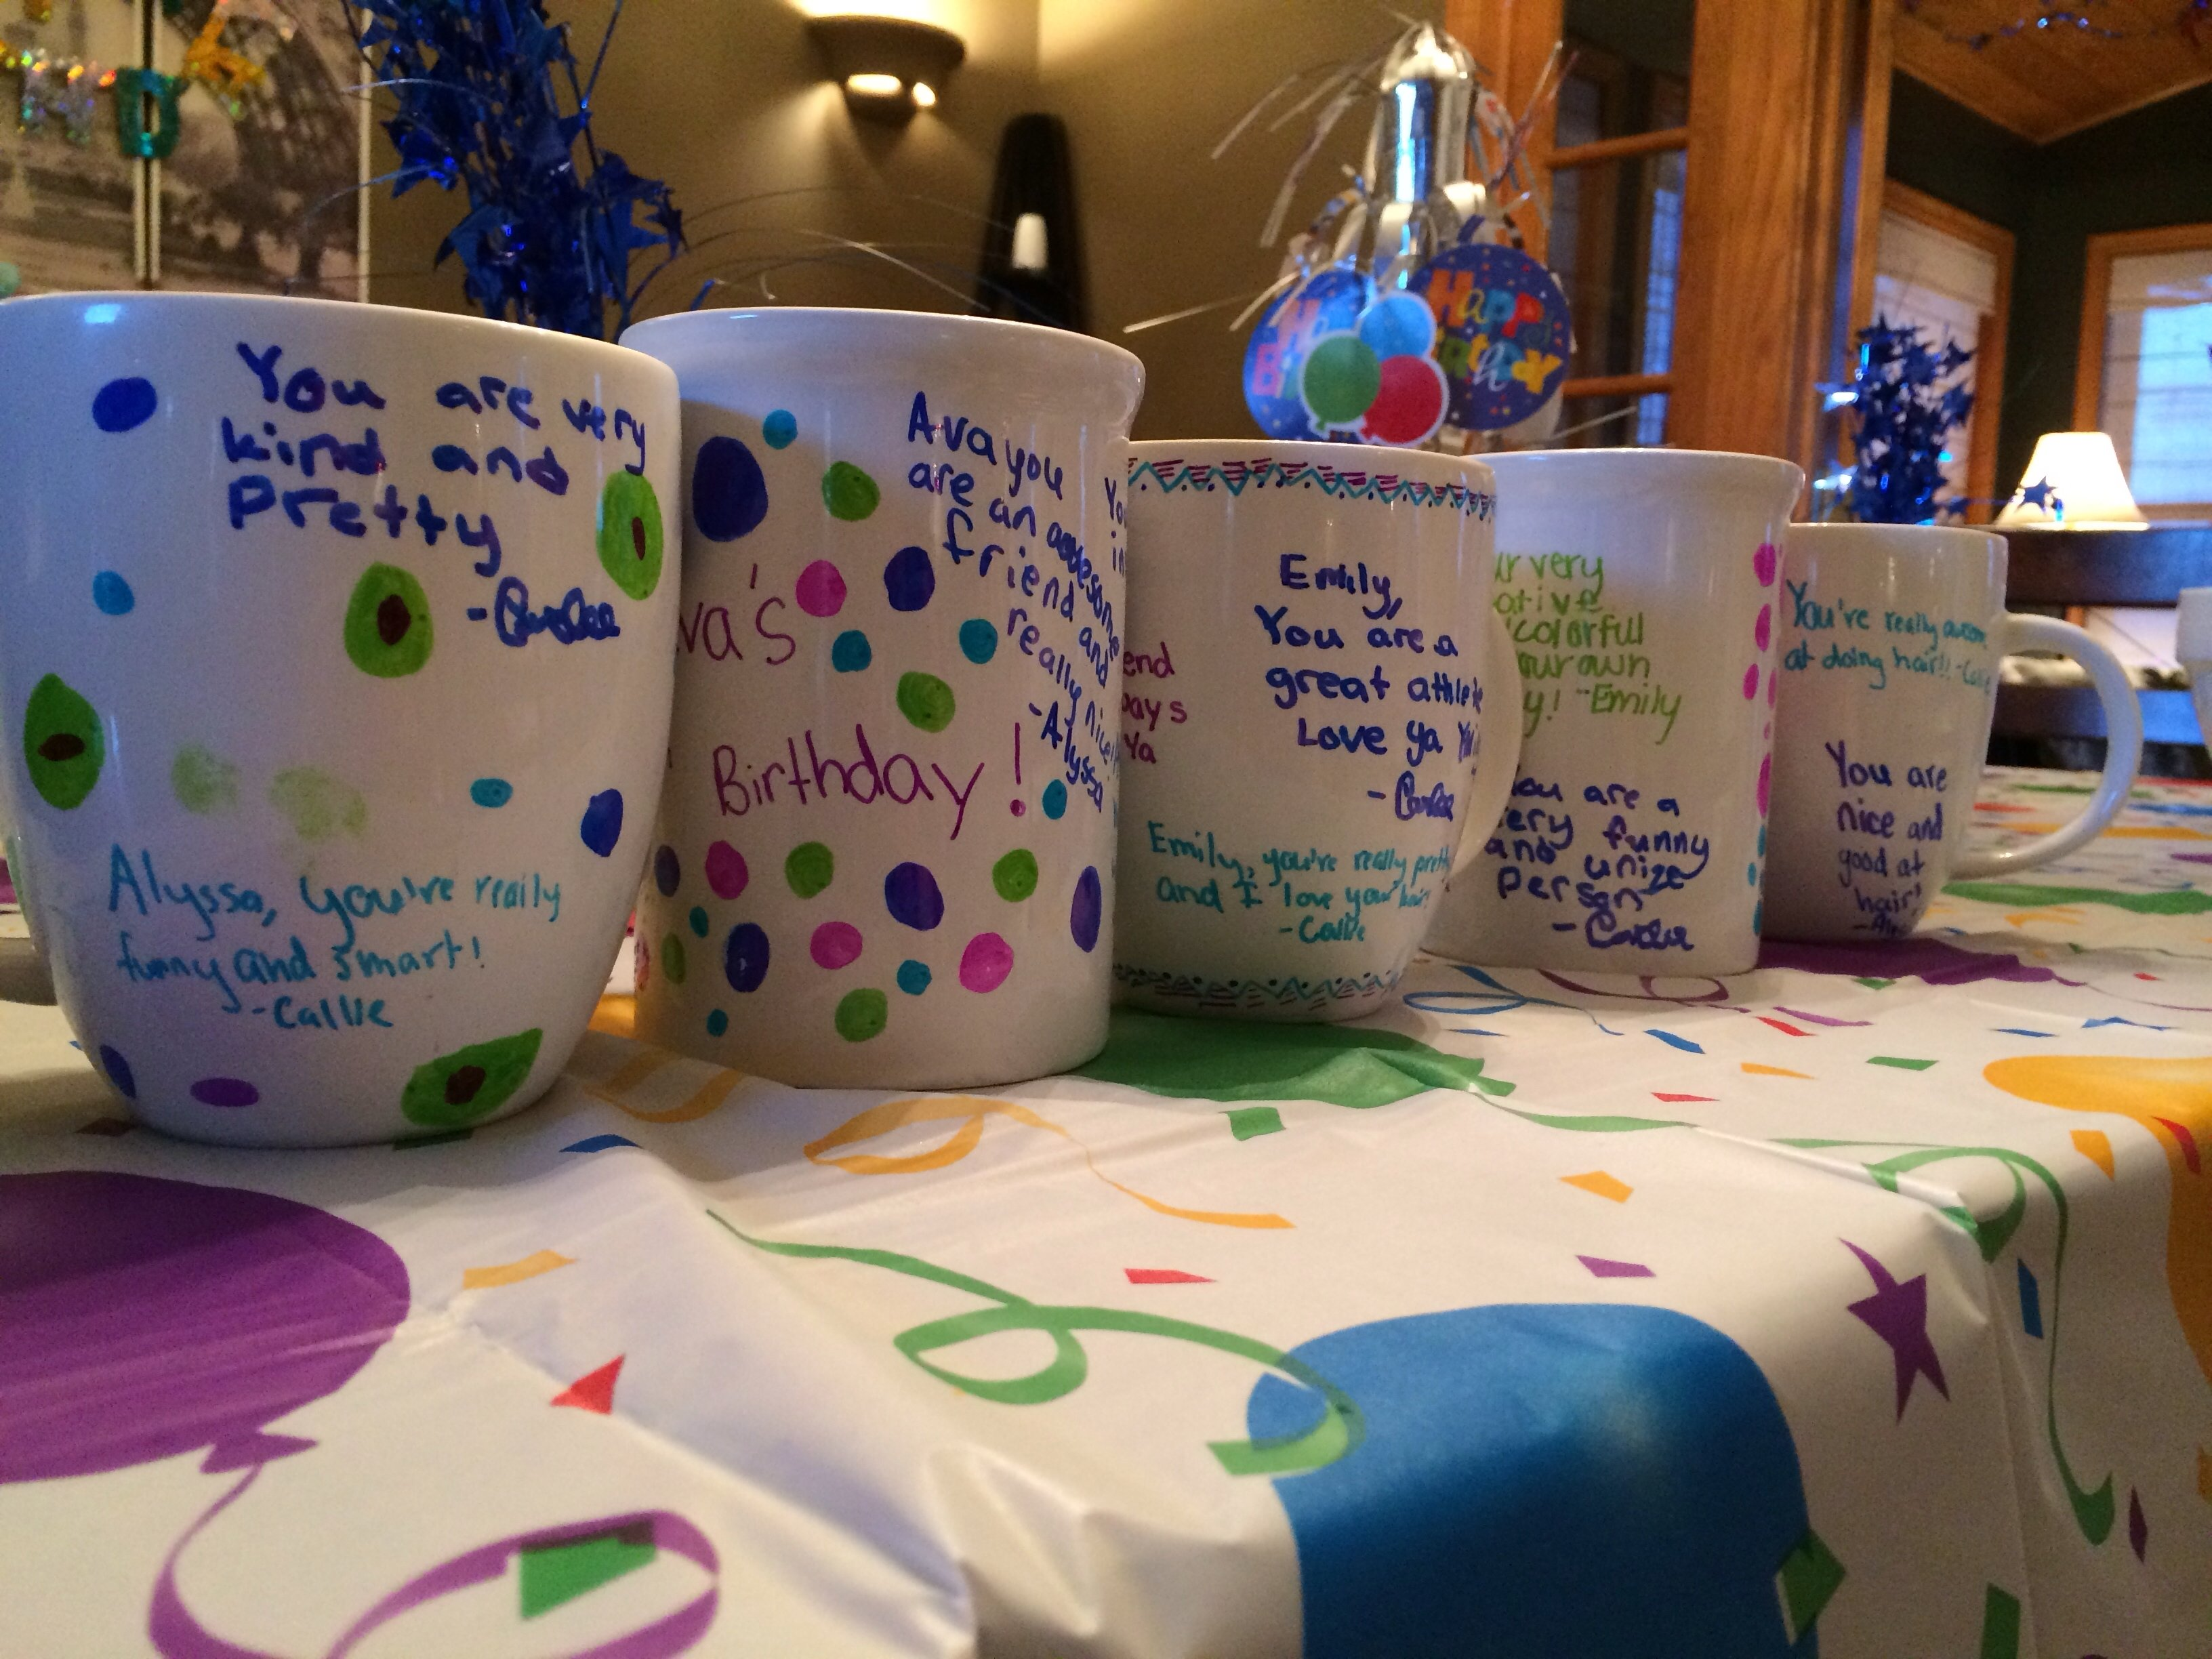 10 Fabulous Ideas For 12 Year Old Birthday Party 12 year old birthday party games ideas wedding 1